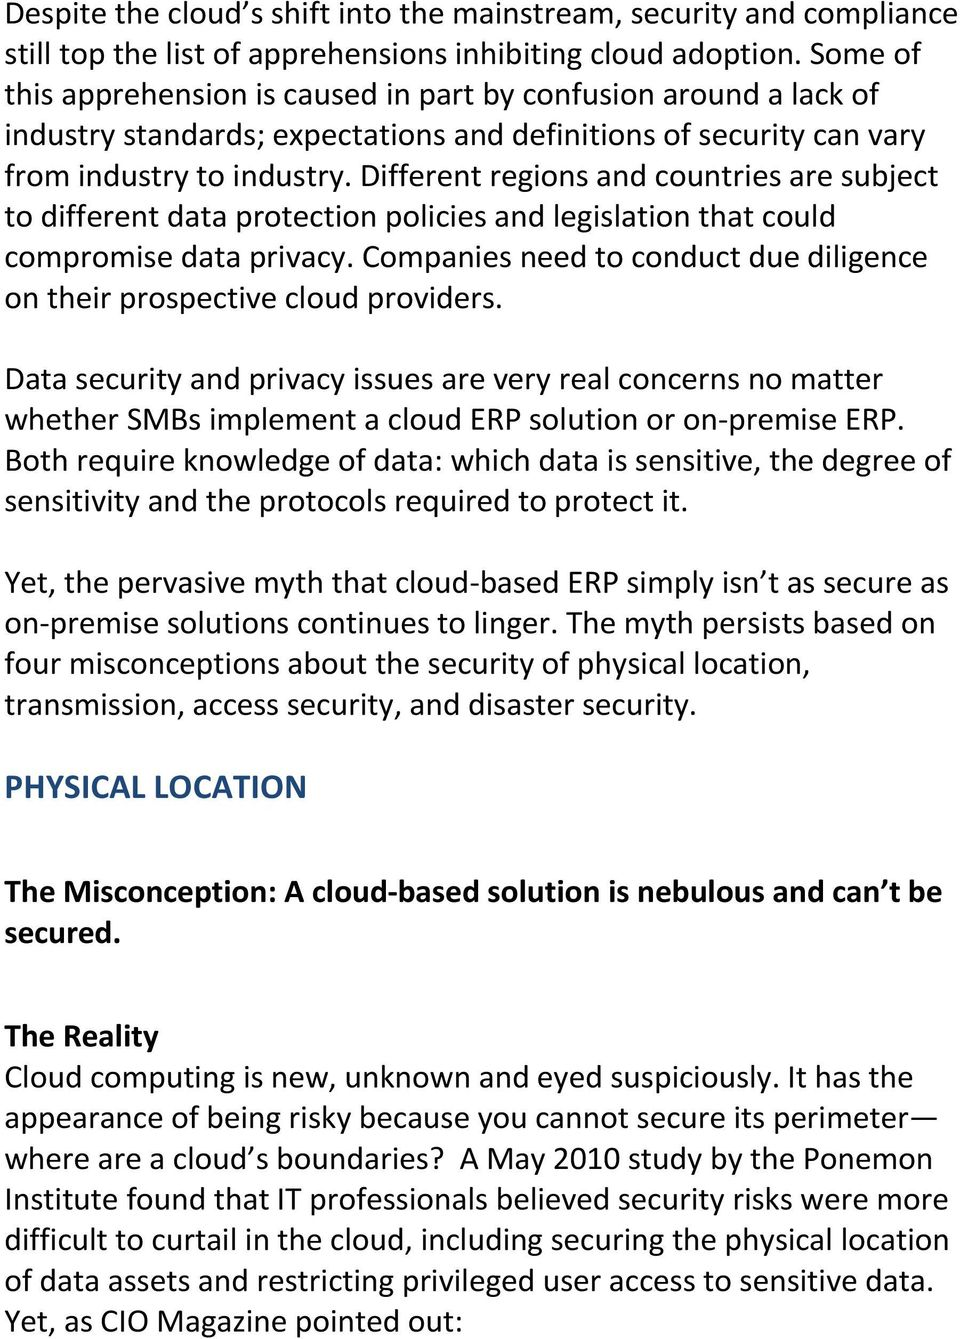 Different regions and countries are subject to different data protection policies and legislation that could compromise data privacy.